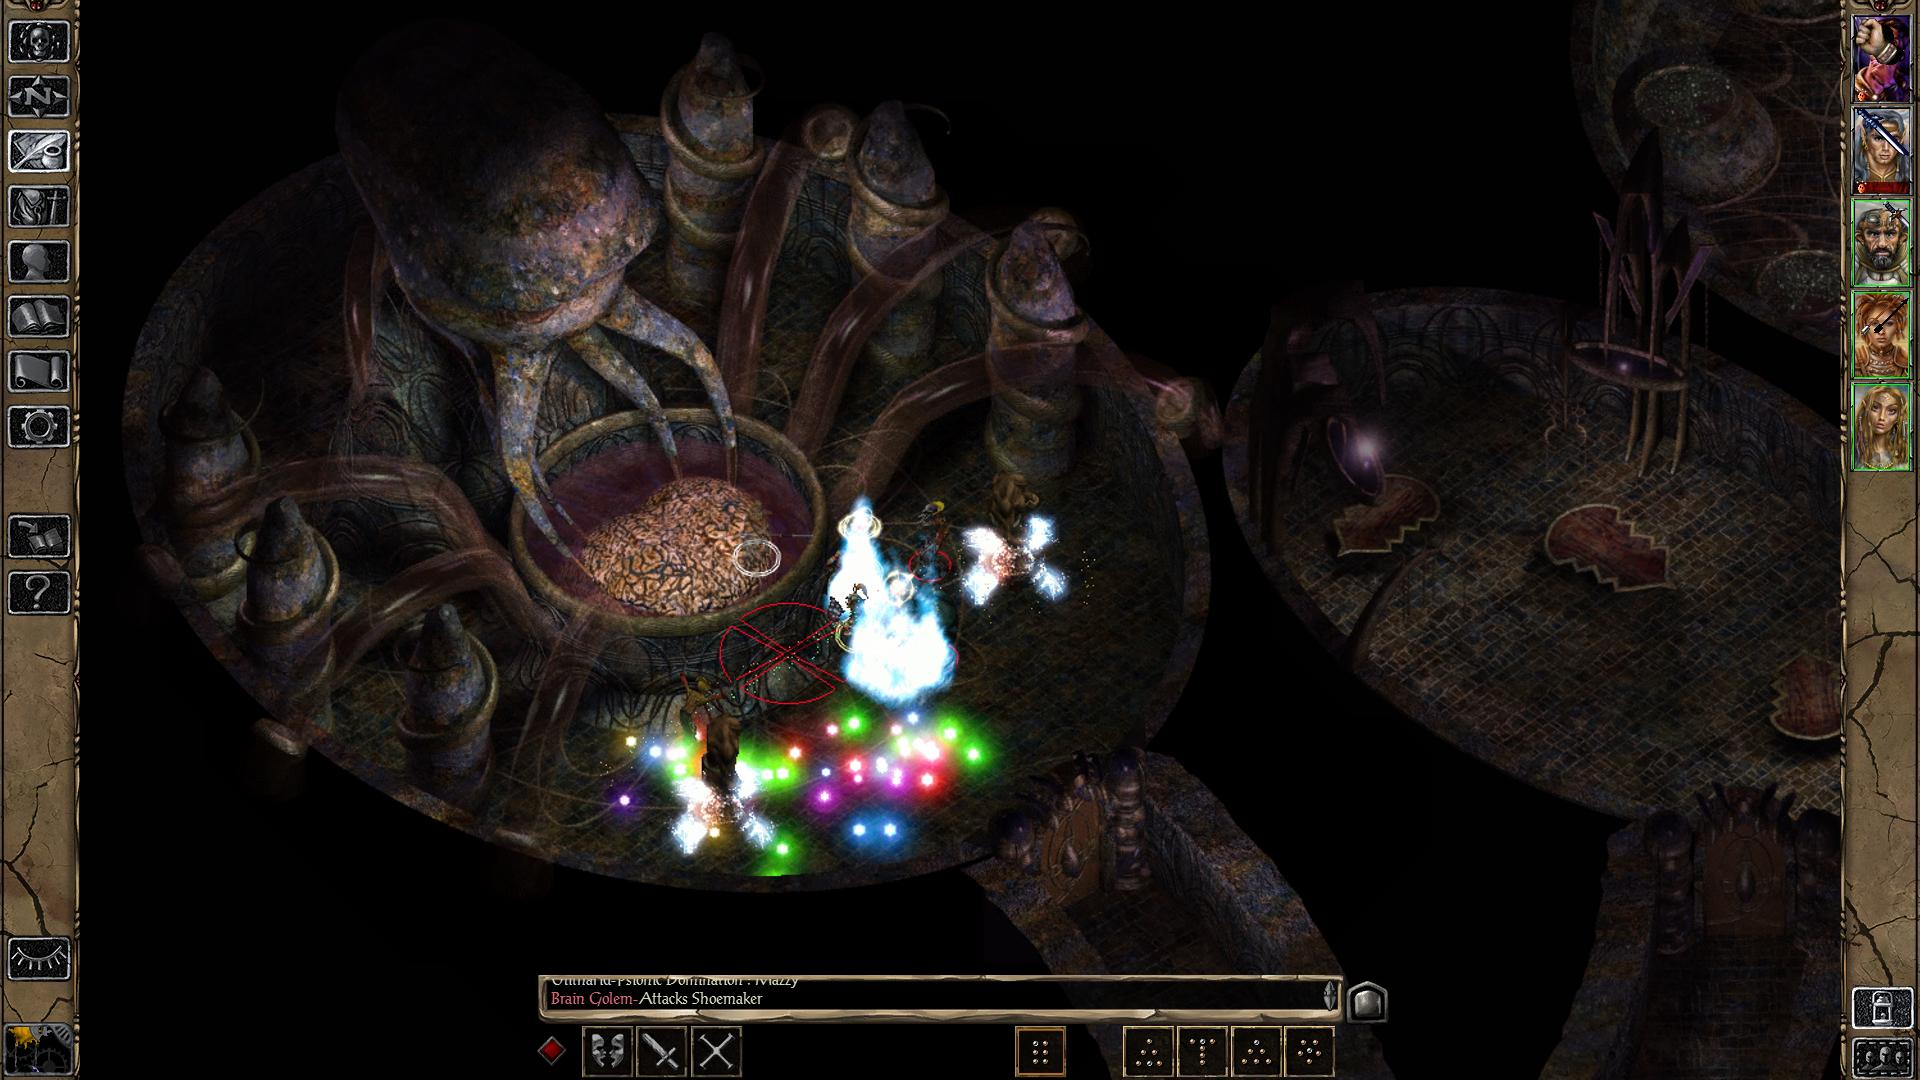 Baldur's Gate 2: Enhanced Edition PC and Mac Release Date Confirmed, First Gameplay Trailer Now Available #28625